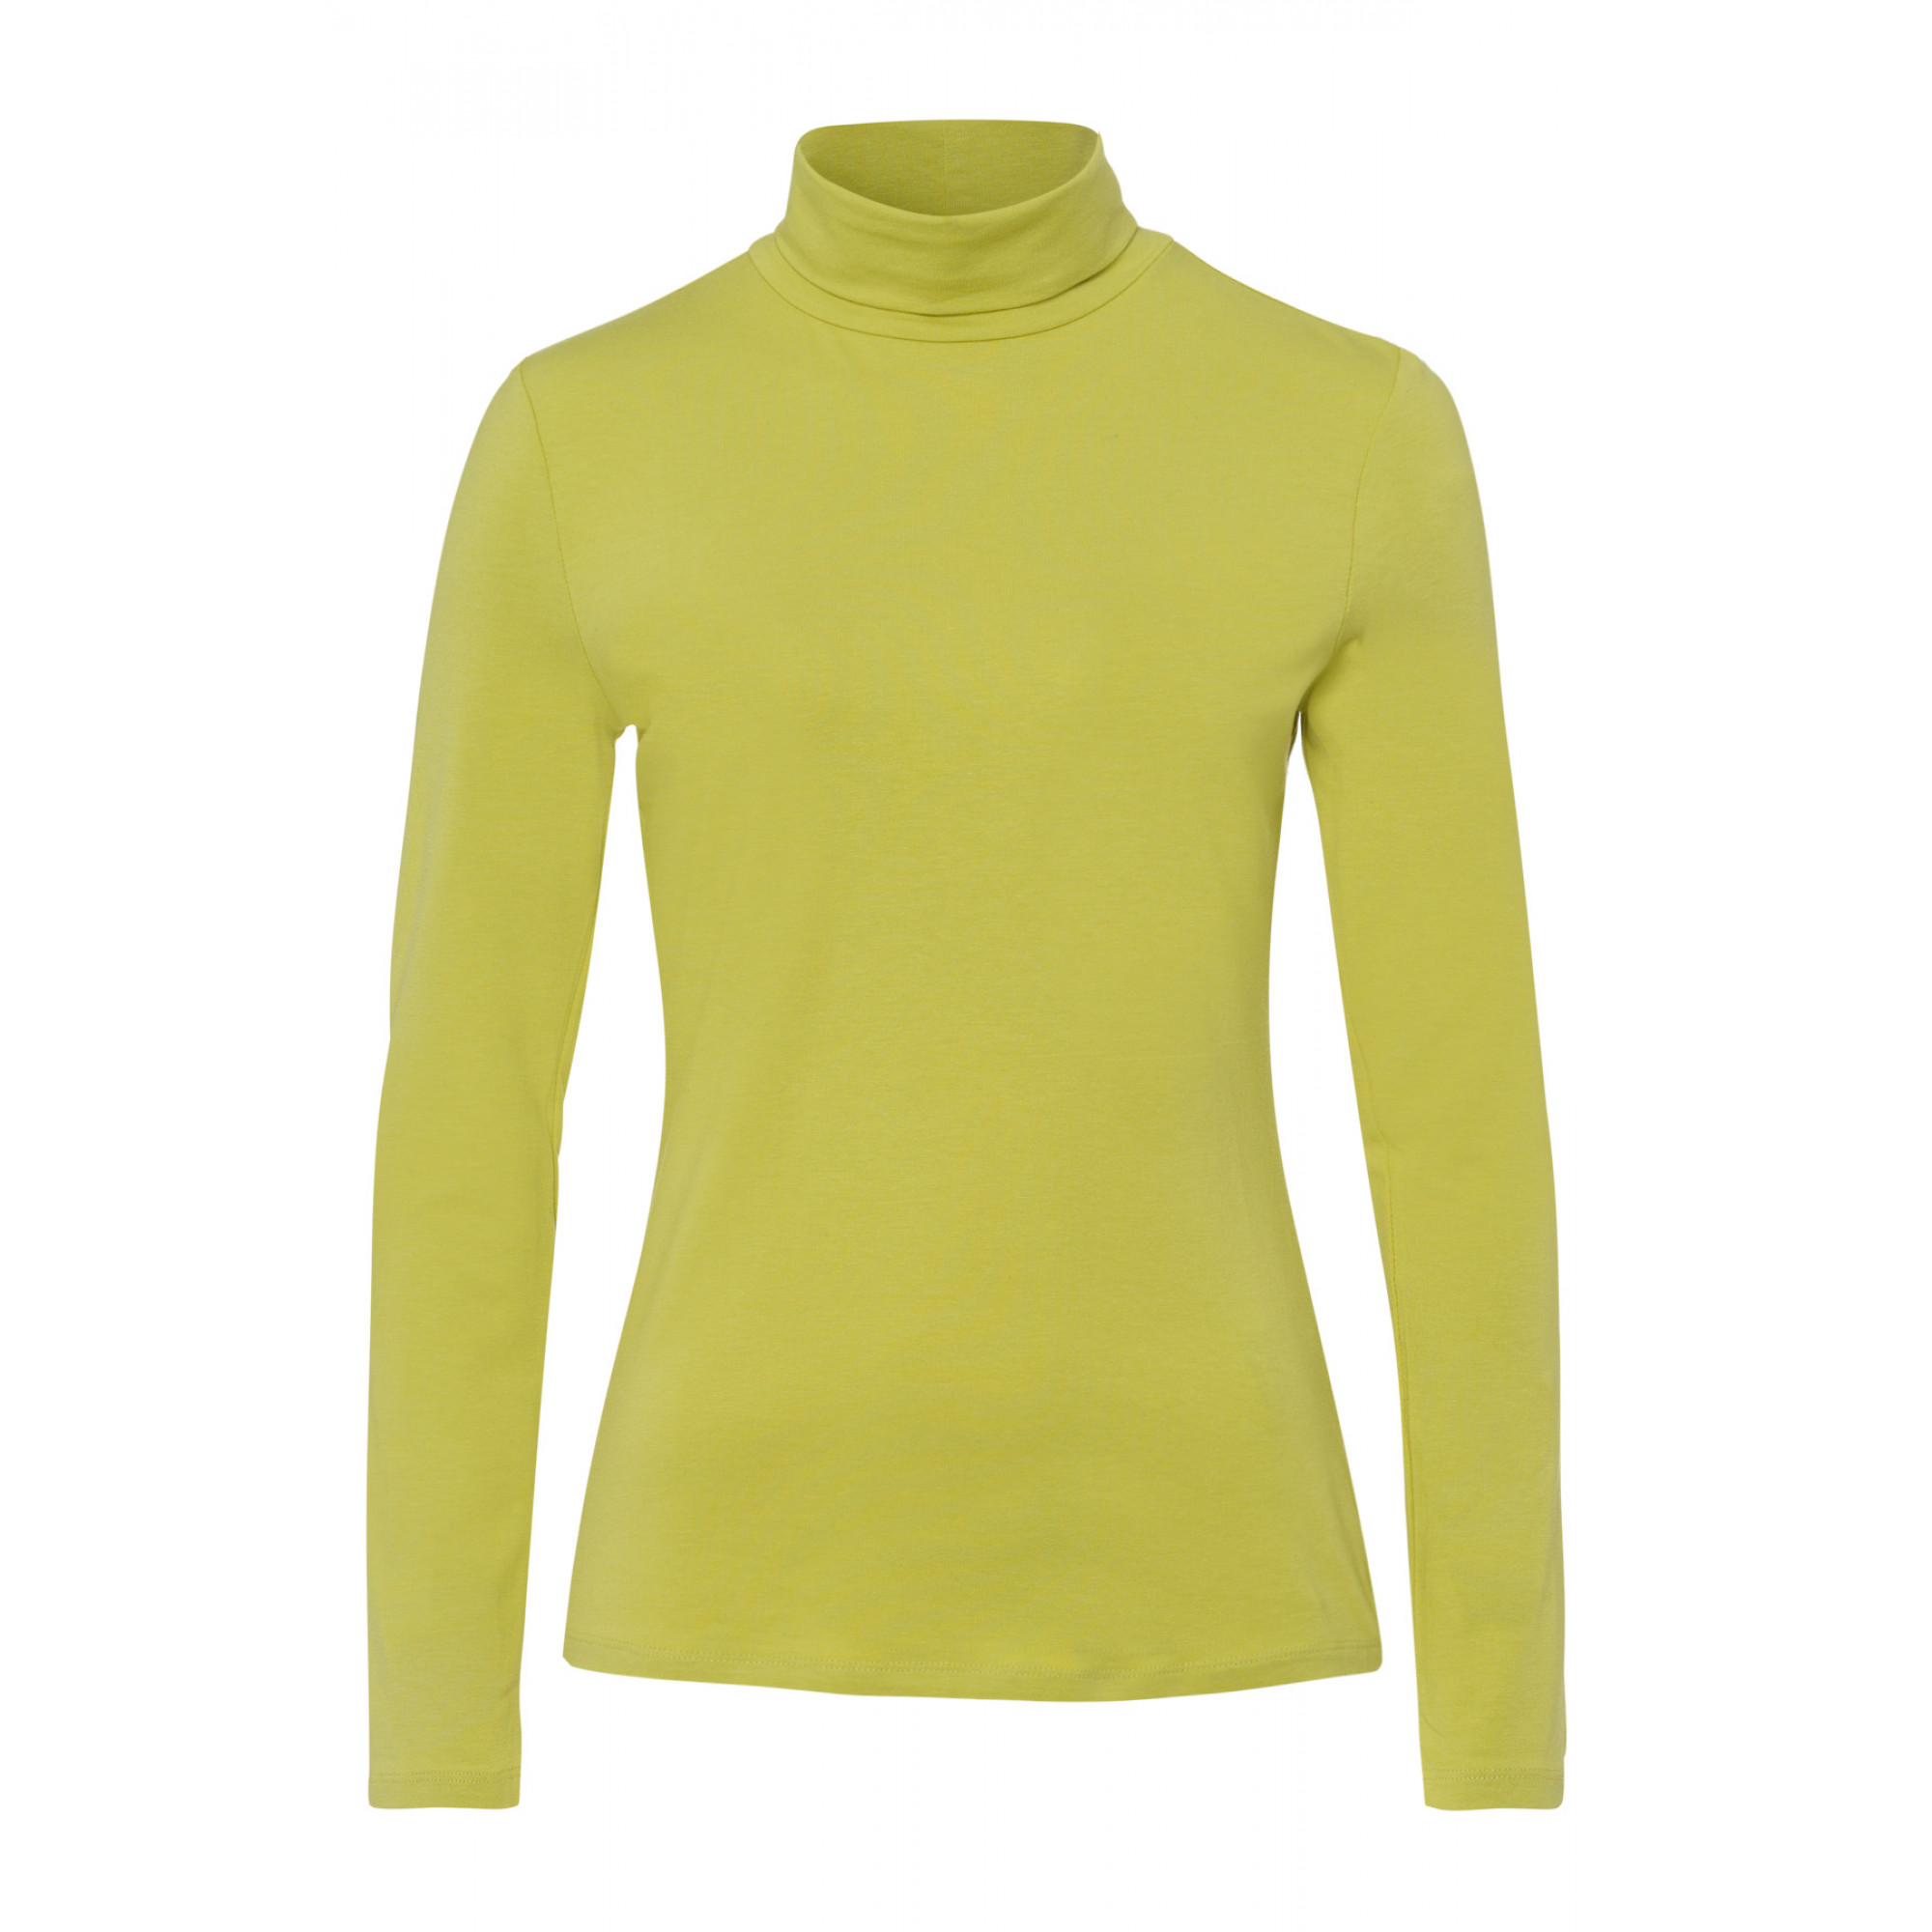 Shirtrolli, lime green 91110014-0610 1